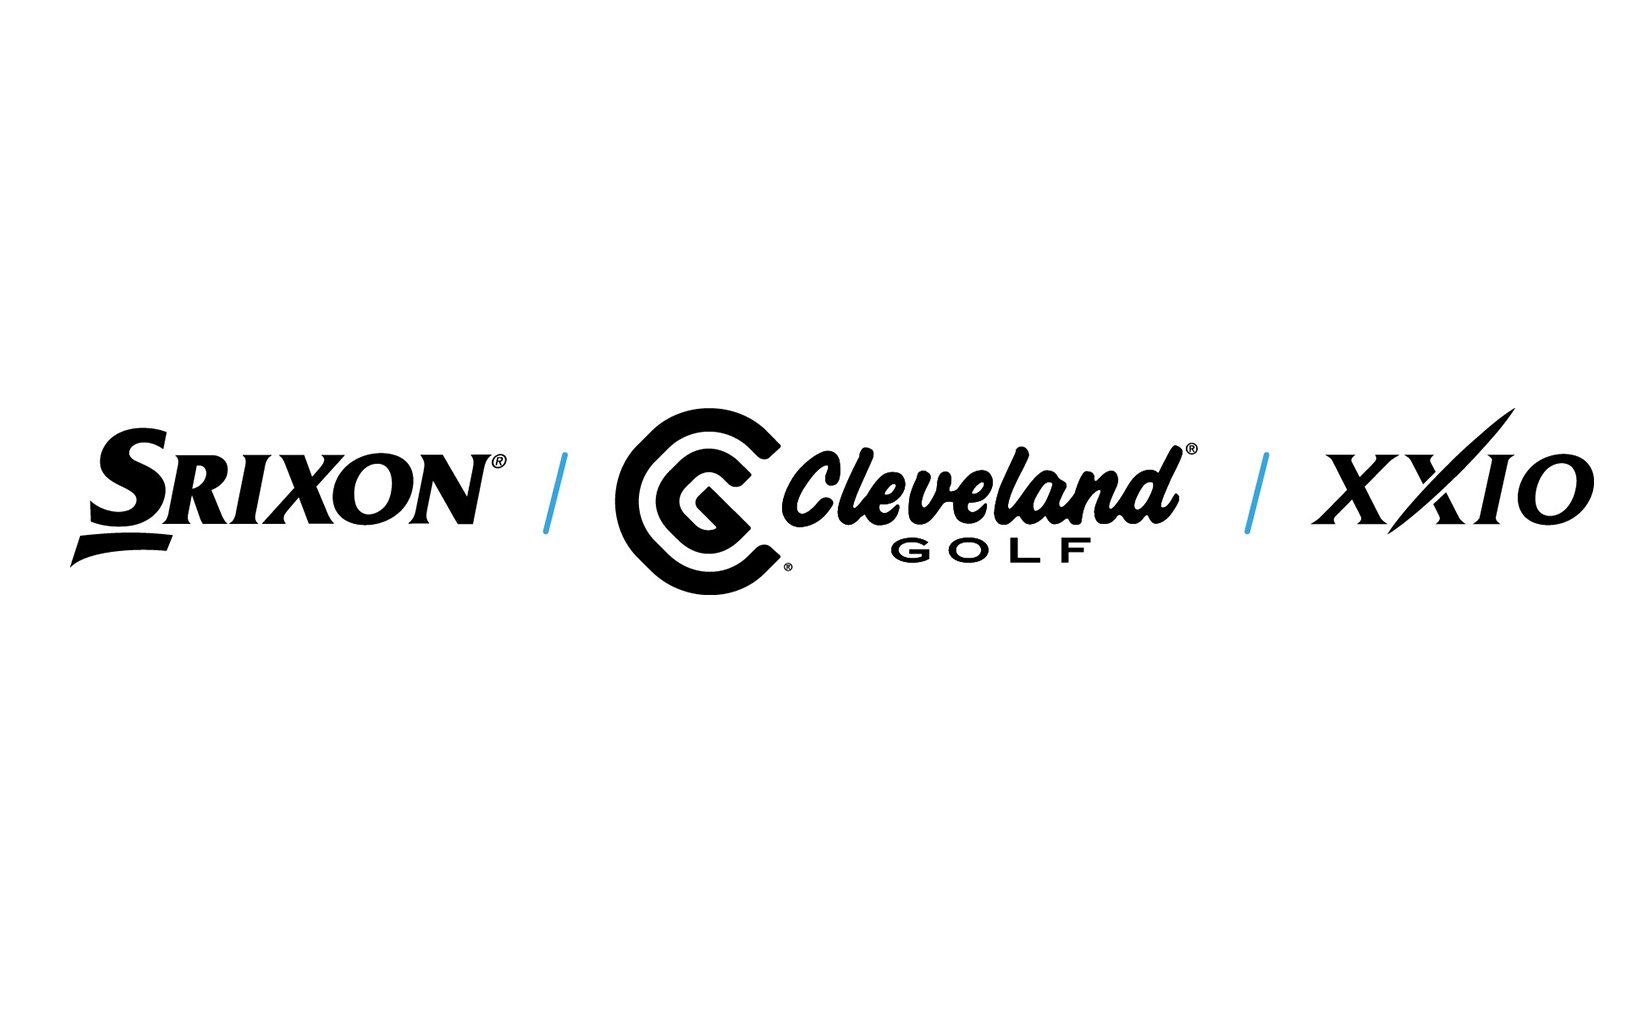 NTPGA Announces New Two-Year Partnership with Srixon / Cleveland Golf / XXIO